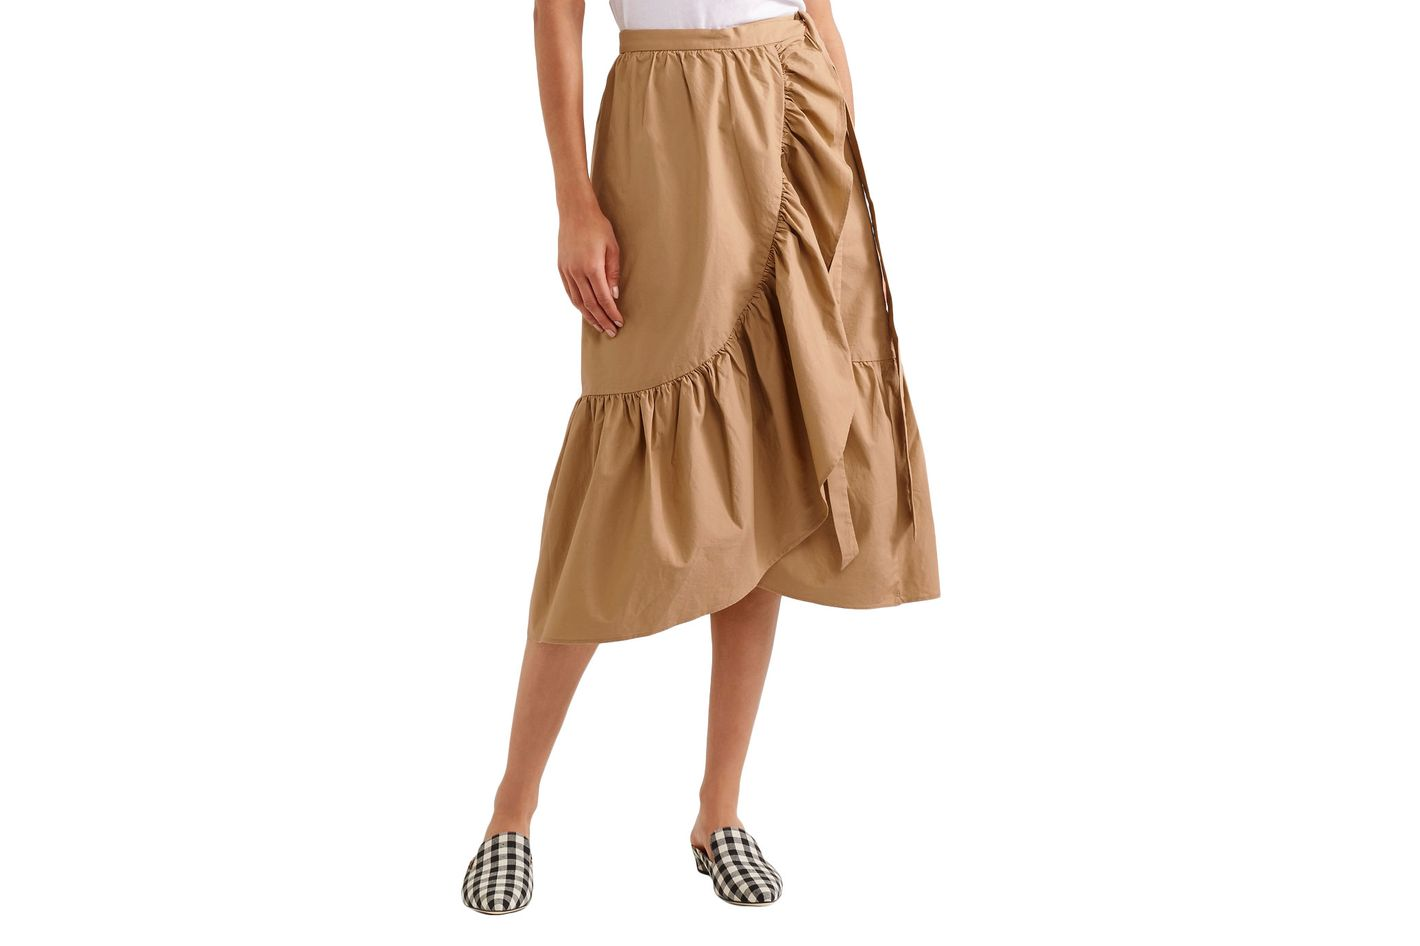 J.Crew Ruffled Poplin Skirt